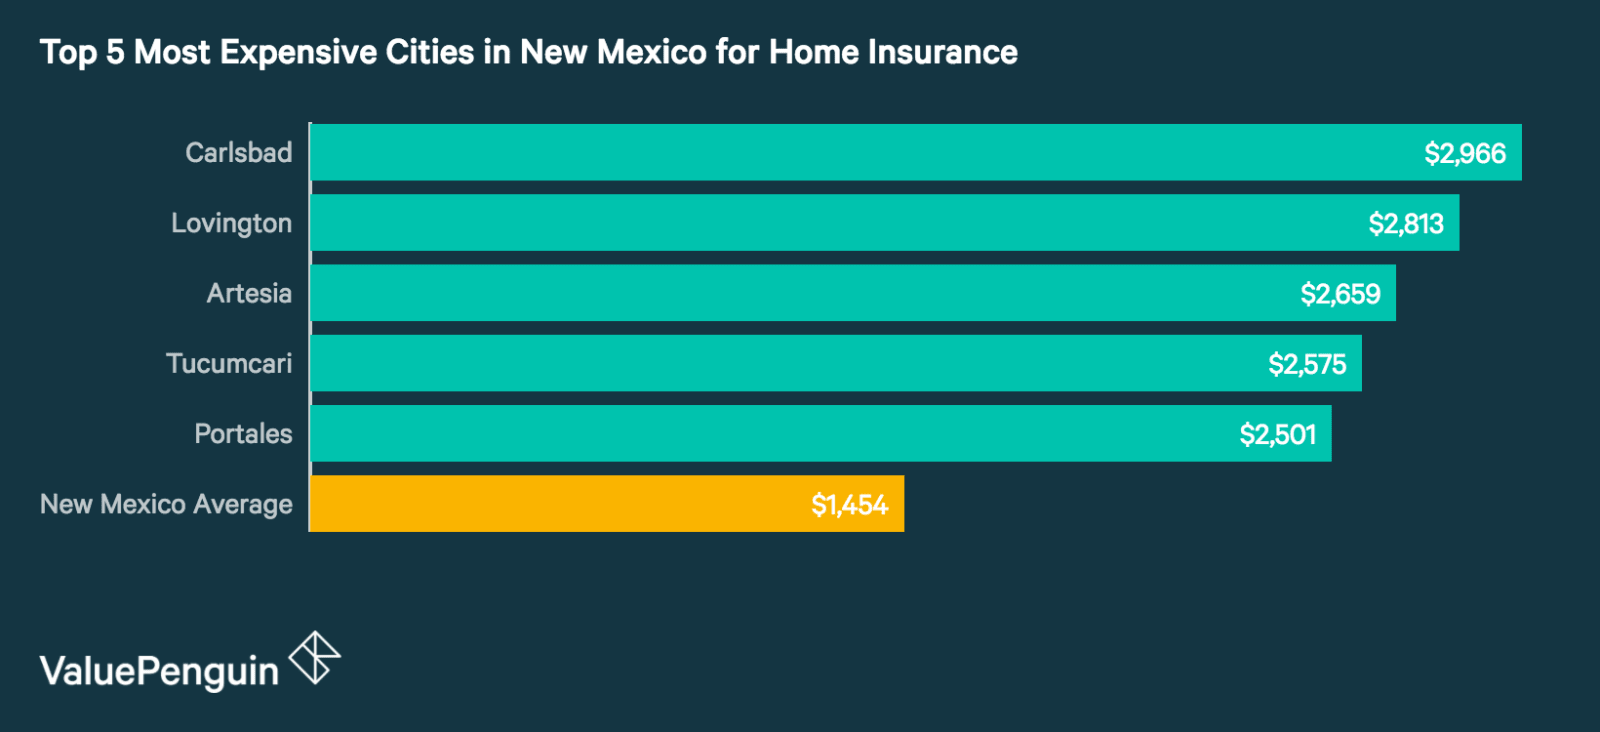 Top 5 Most Expensive Cities in New Mexico for Homeowners Insurance